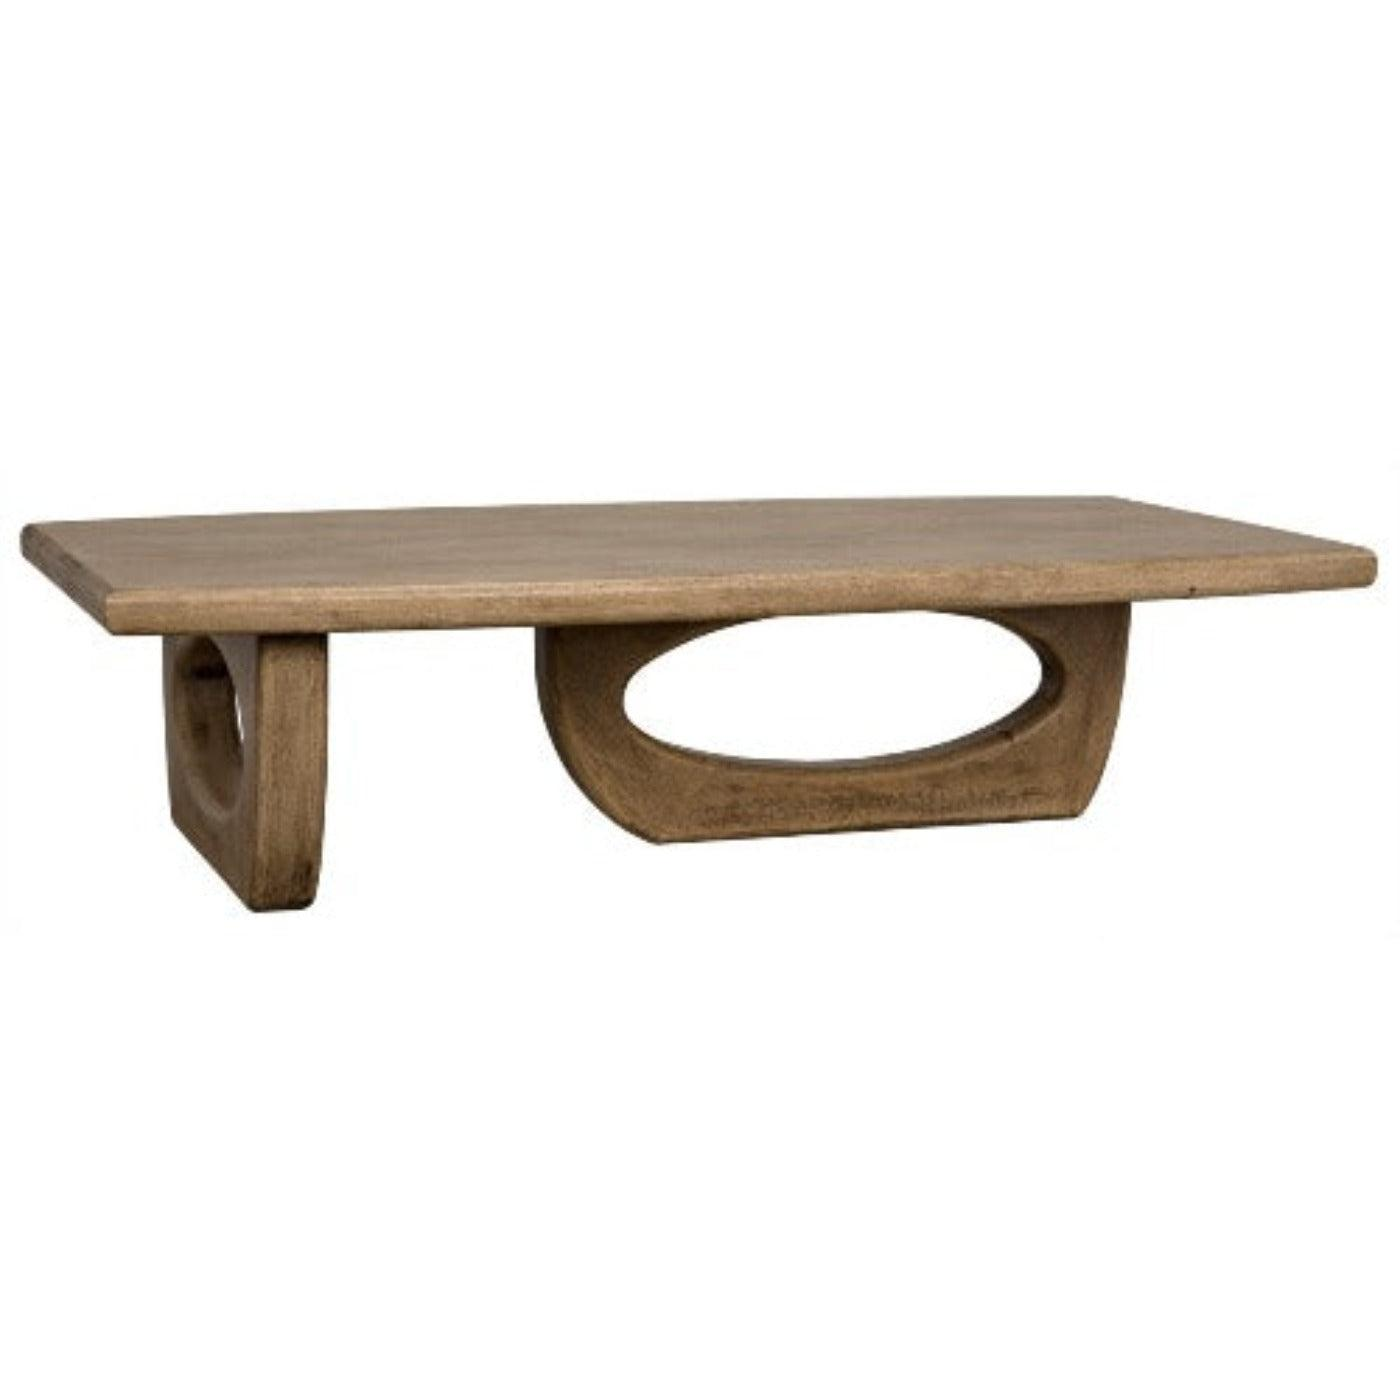 Noir Furniture Douglas Coffee Table, Bleached Walnut-Noir Furniture-Blue Hand Home